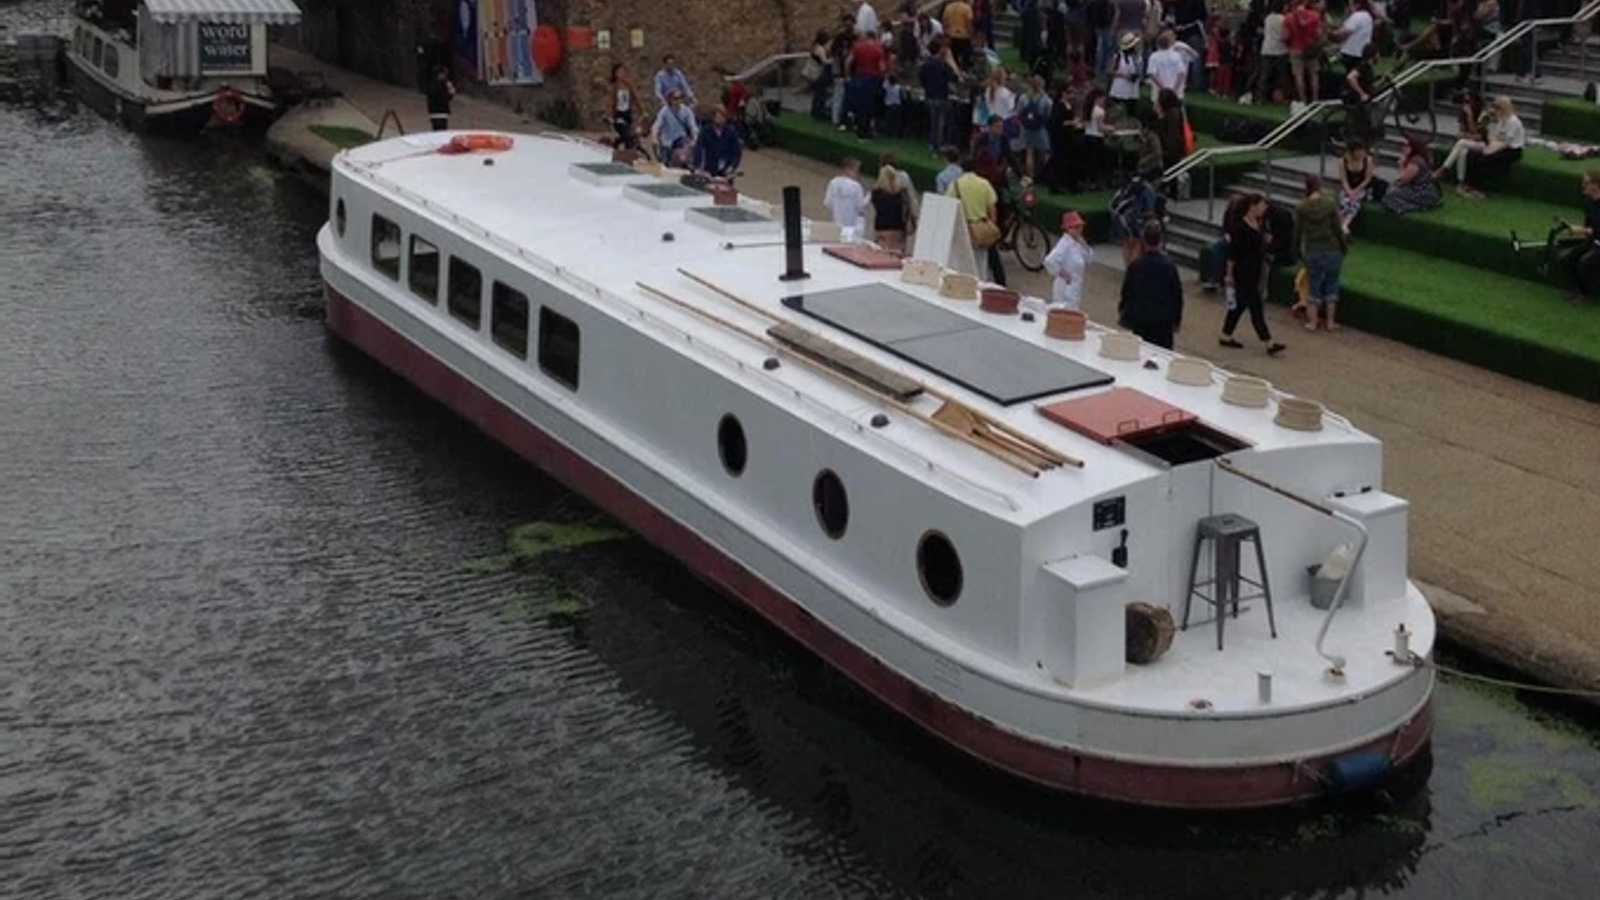 60ft canal barge